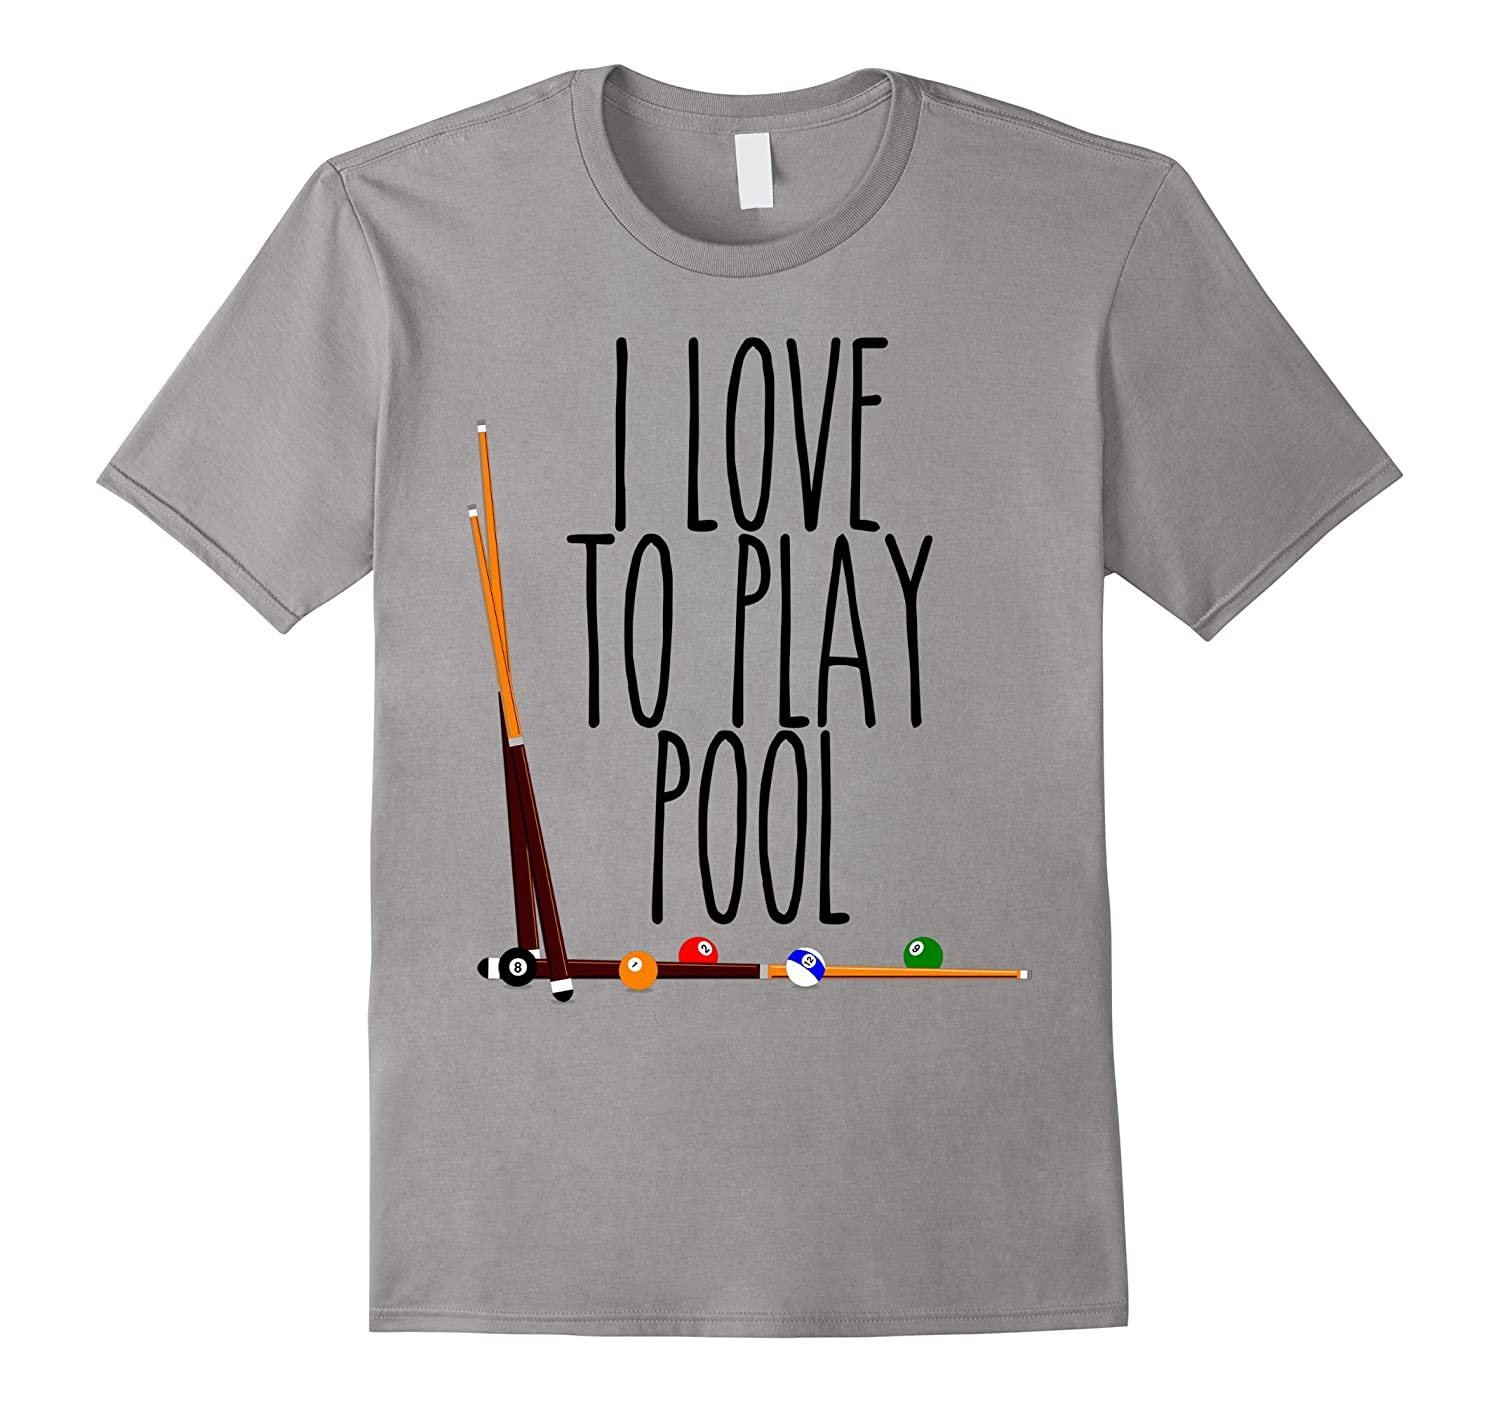 Billiards Cues Balls - I LOVE TO PLAY POOL T-Shirt-PL